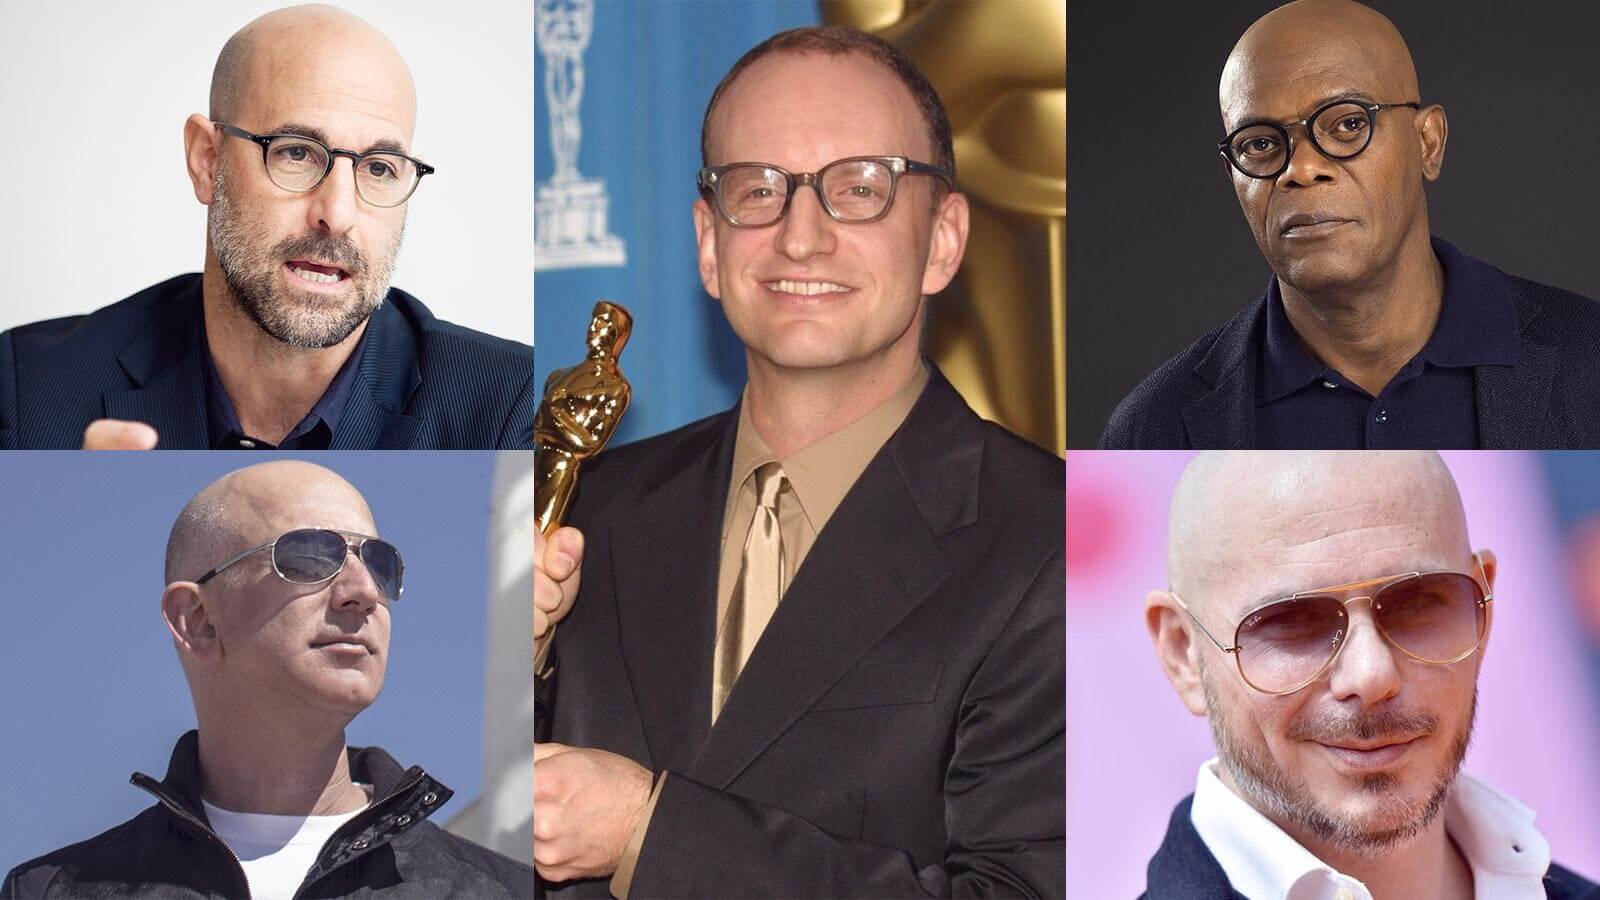 How to Style Your Shaved Head With Glasses?